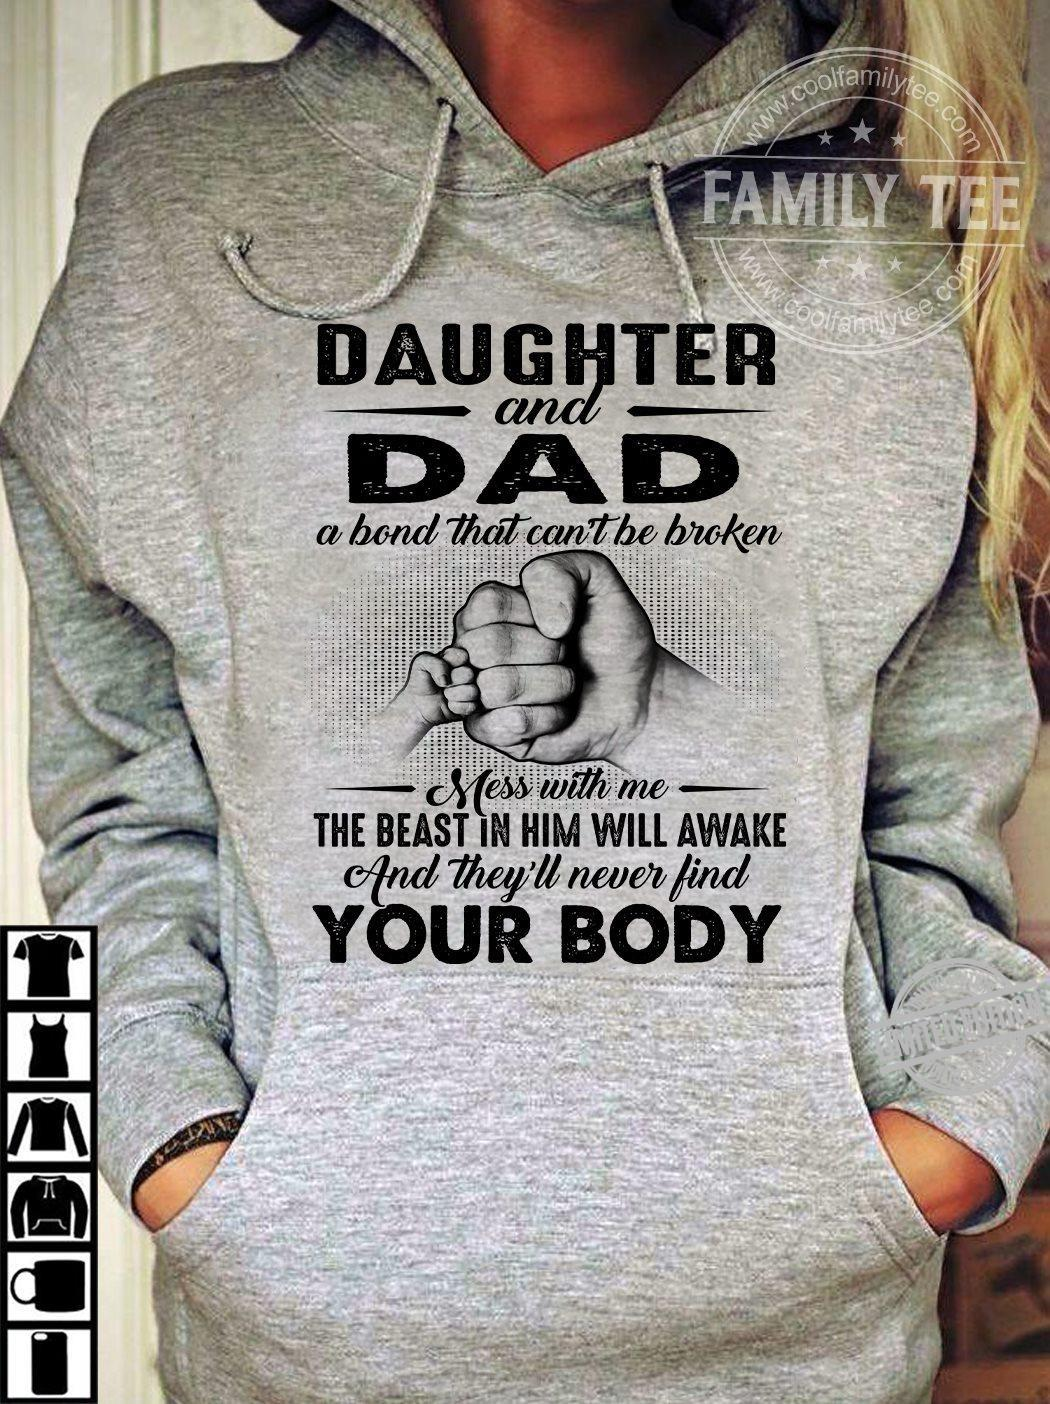 Daughter And Dad A Bont That Can't Be Broken Mess With Me The Beast In Him Will Awake And They'll Never Find Your Body Shirt